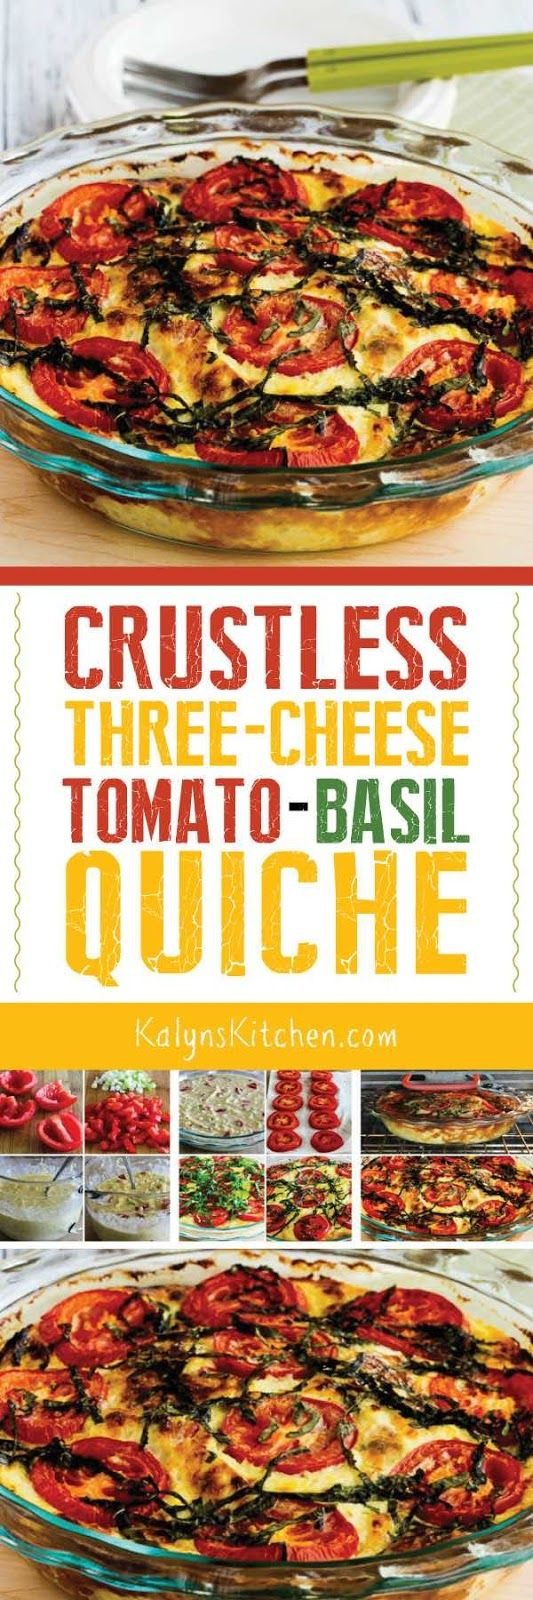 Any time you can get fresh basil, buy some Roma tomaotes and make this Crustless Three-Cheese Tomato-Basil Quiche; this quiche is a great breakfast option for a holiday or special occasionl. And this meatless recipe is also low-carb, low-glycemic, gluten-free, and South Beach Diet friendly. [found on KalynsKitchen.com] #CrustlessQuiche #CrustlessTomatoBasilQuiche #LowCarbQuiche